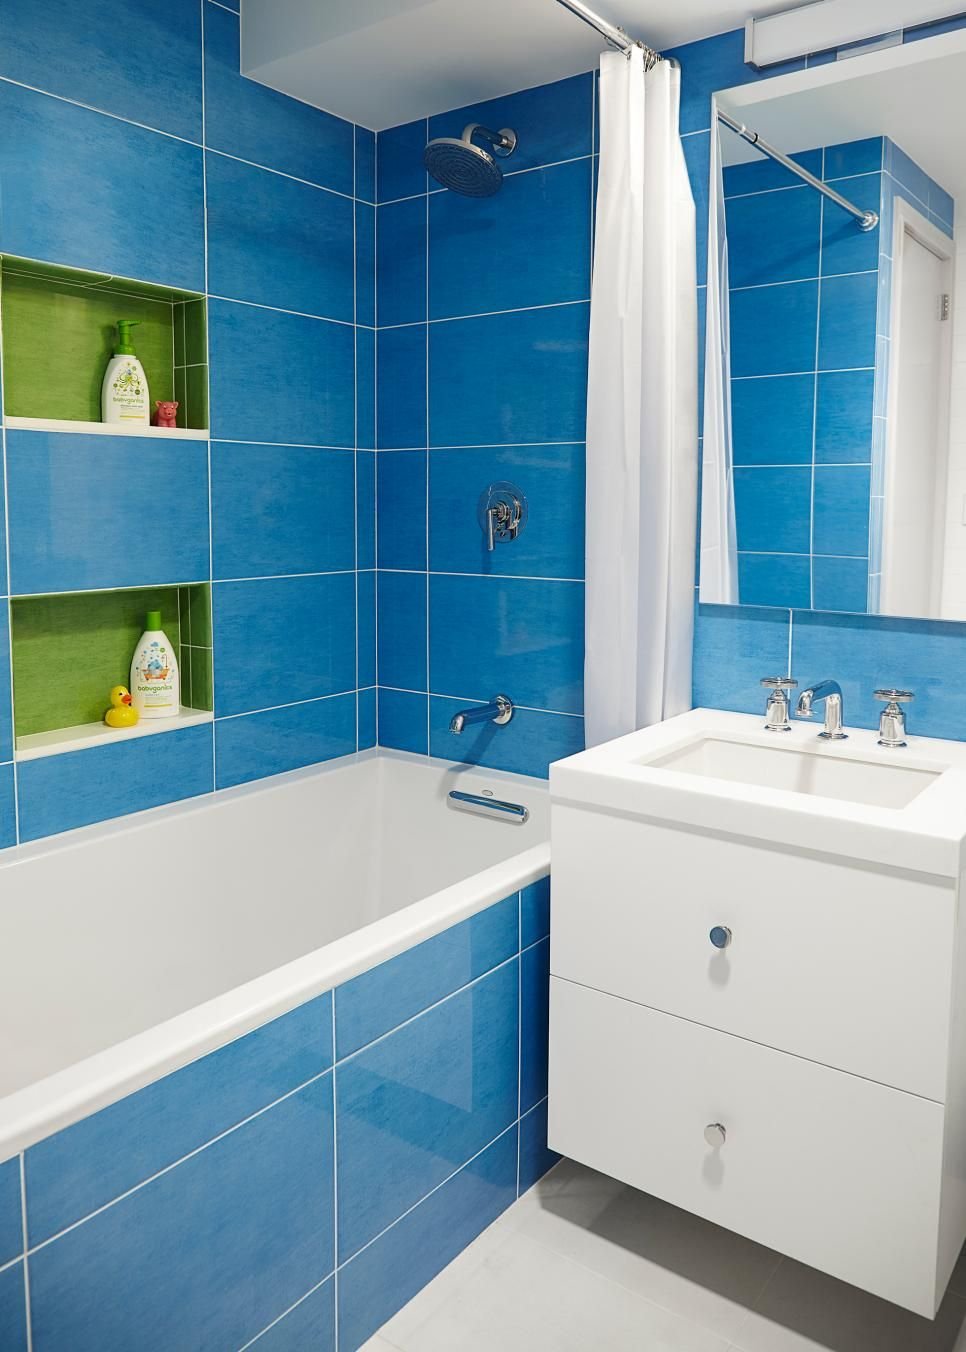 How to Bring Color Into Your Home | Floating vanity, Blue tiles and Hgtv